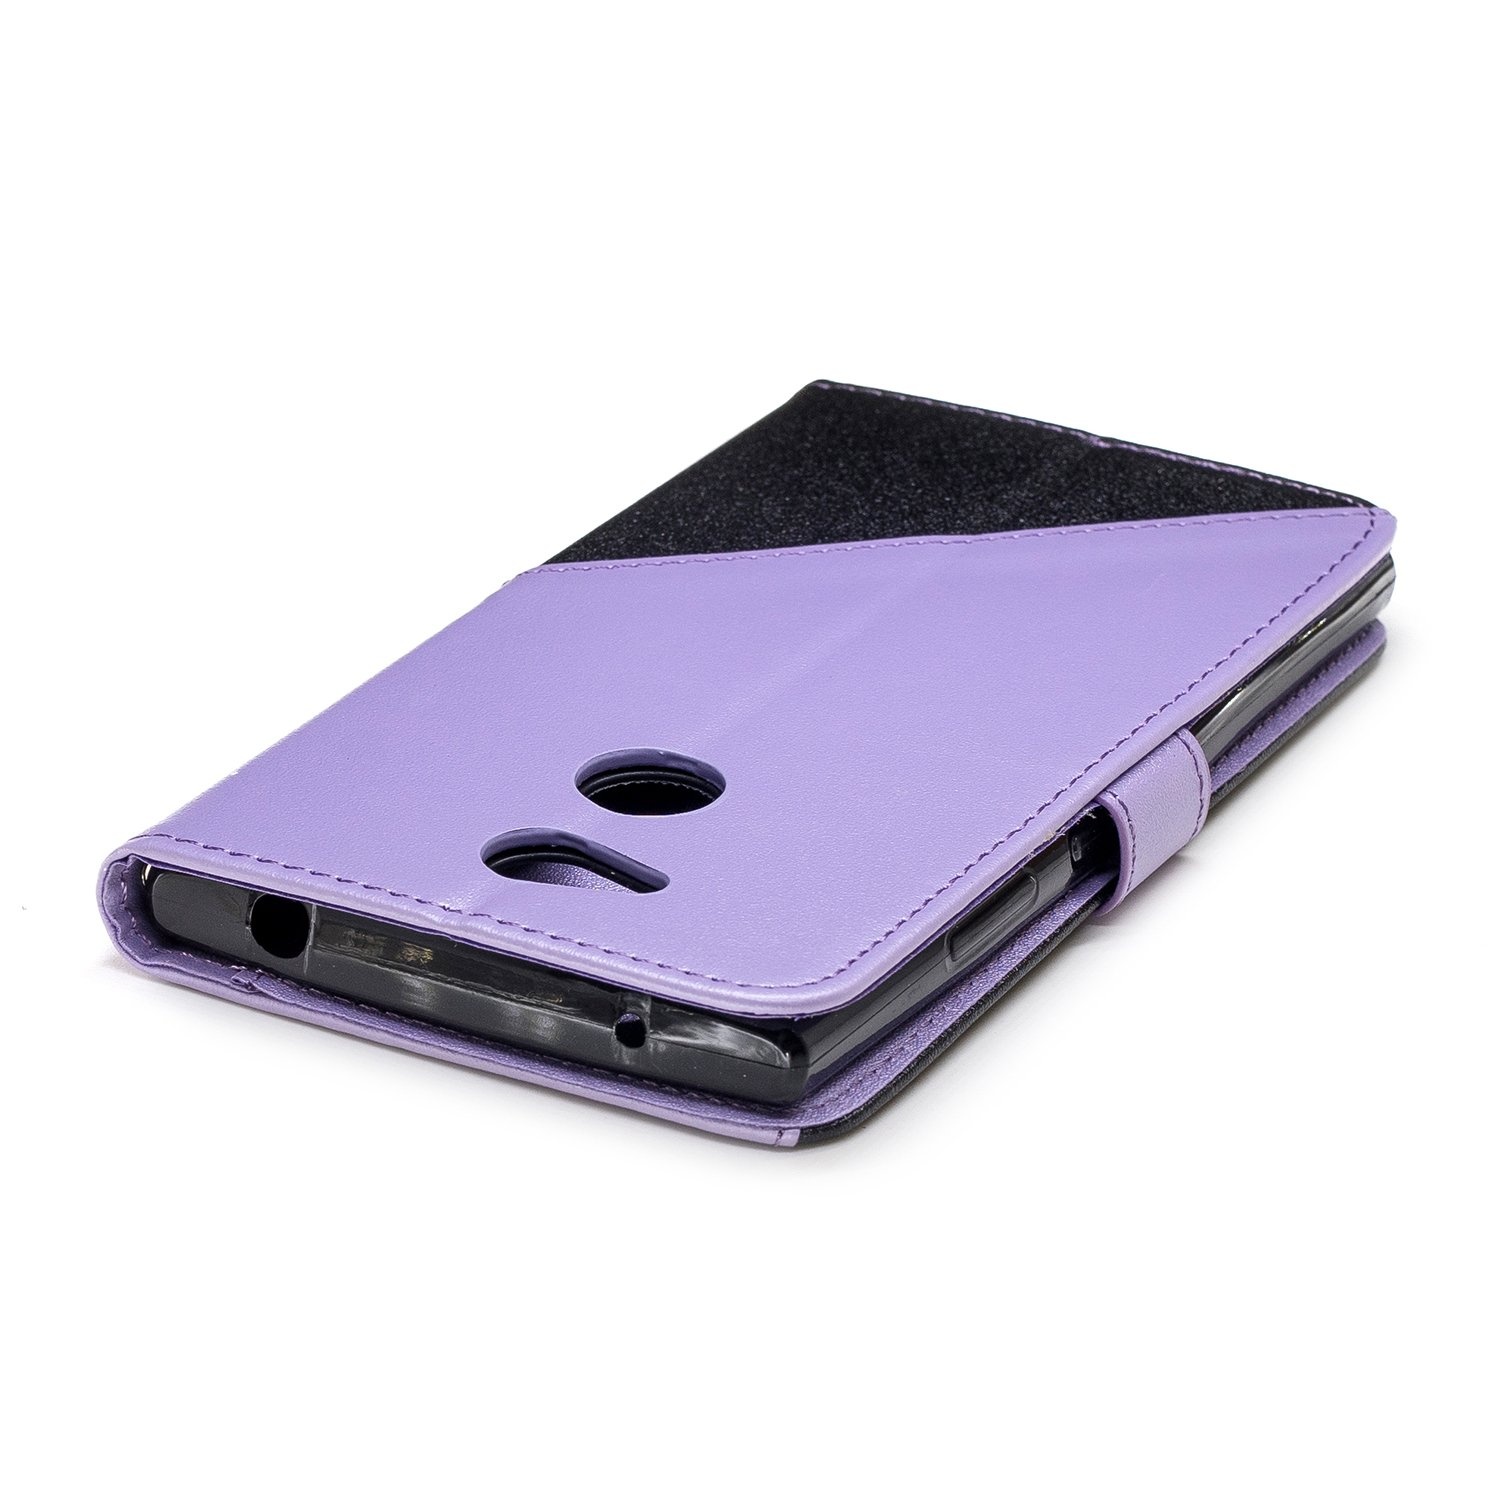 Sony L2 Case Slots PU Leather Ultra-Thin Protective Case Cover with Tripod Card Slot Case Thinest Sony L2 case